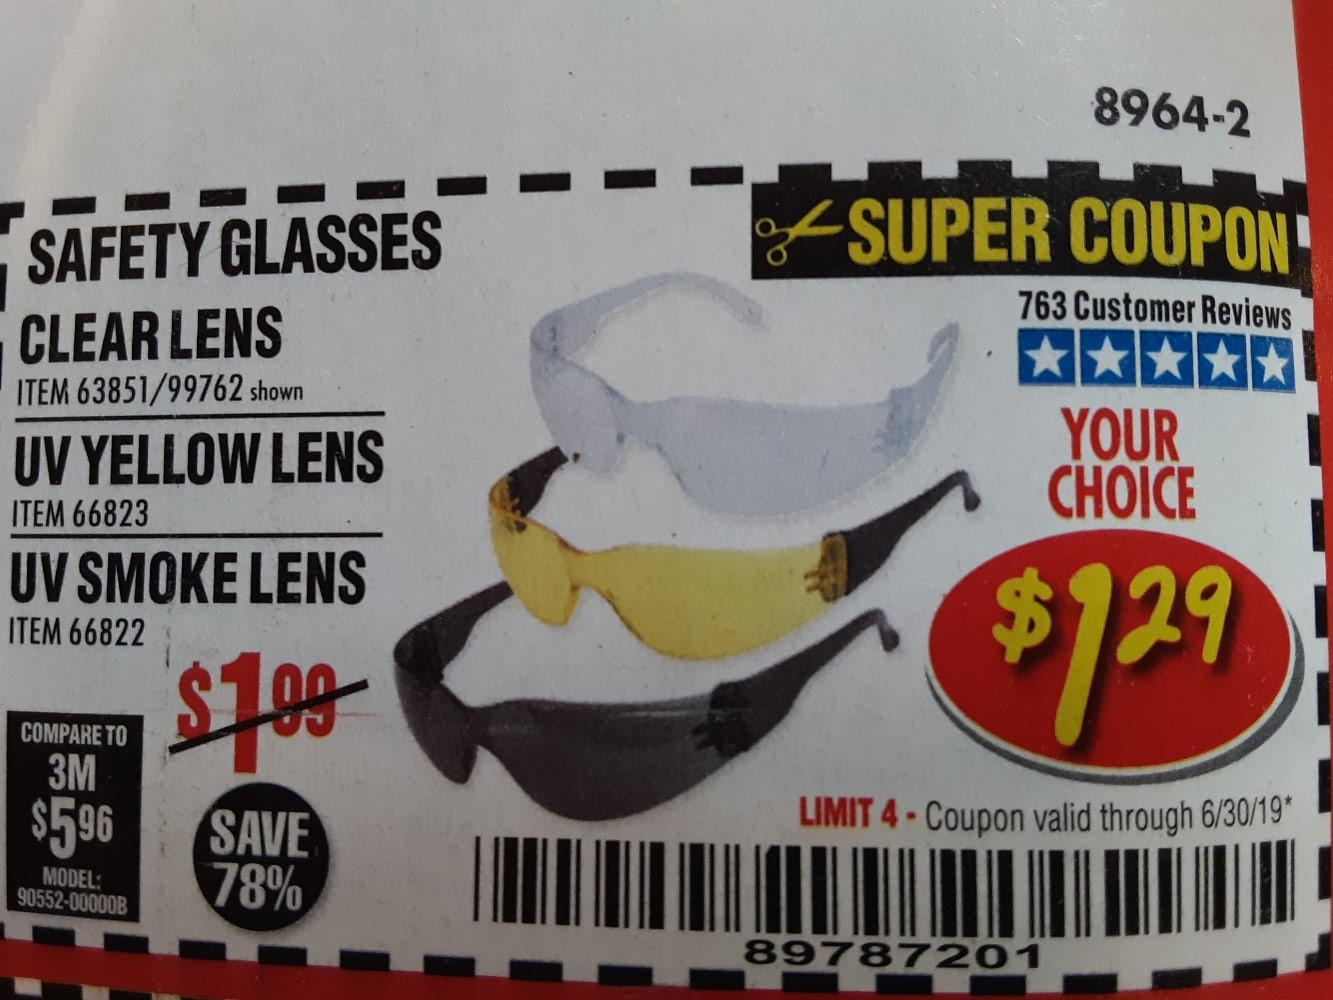 Harbor Freight Coupon, HF Coupons - Safety Glasses